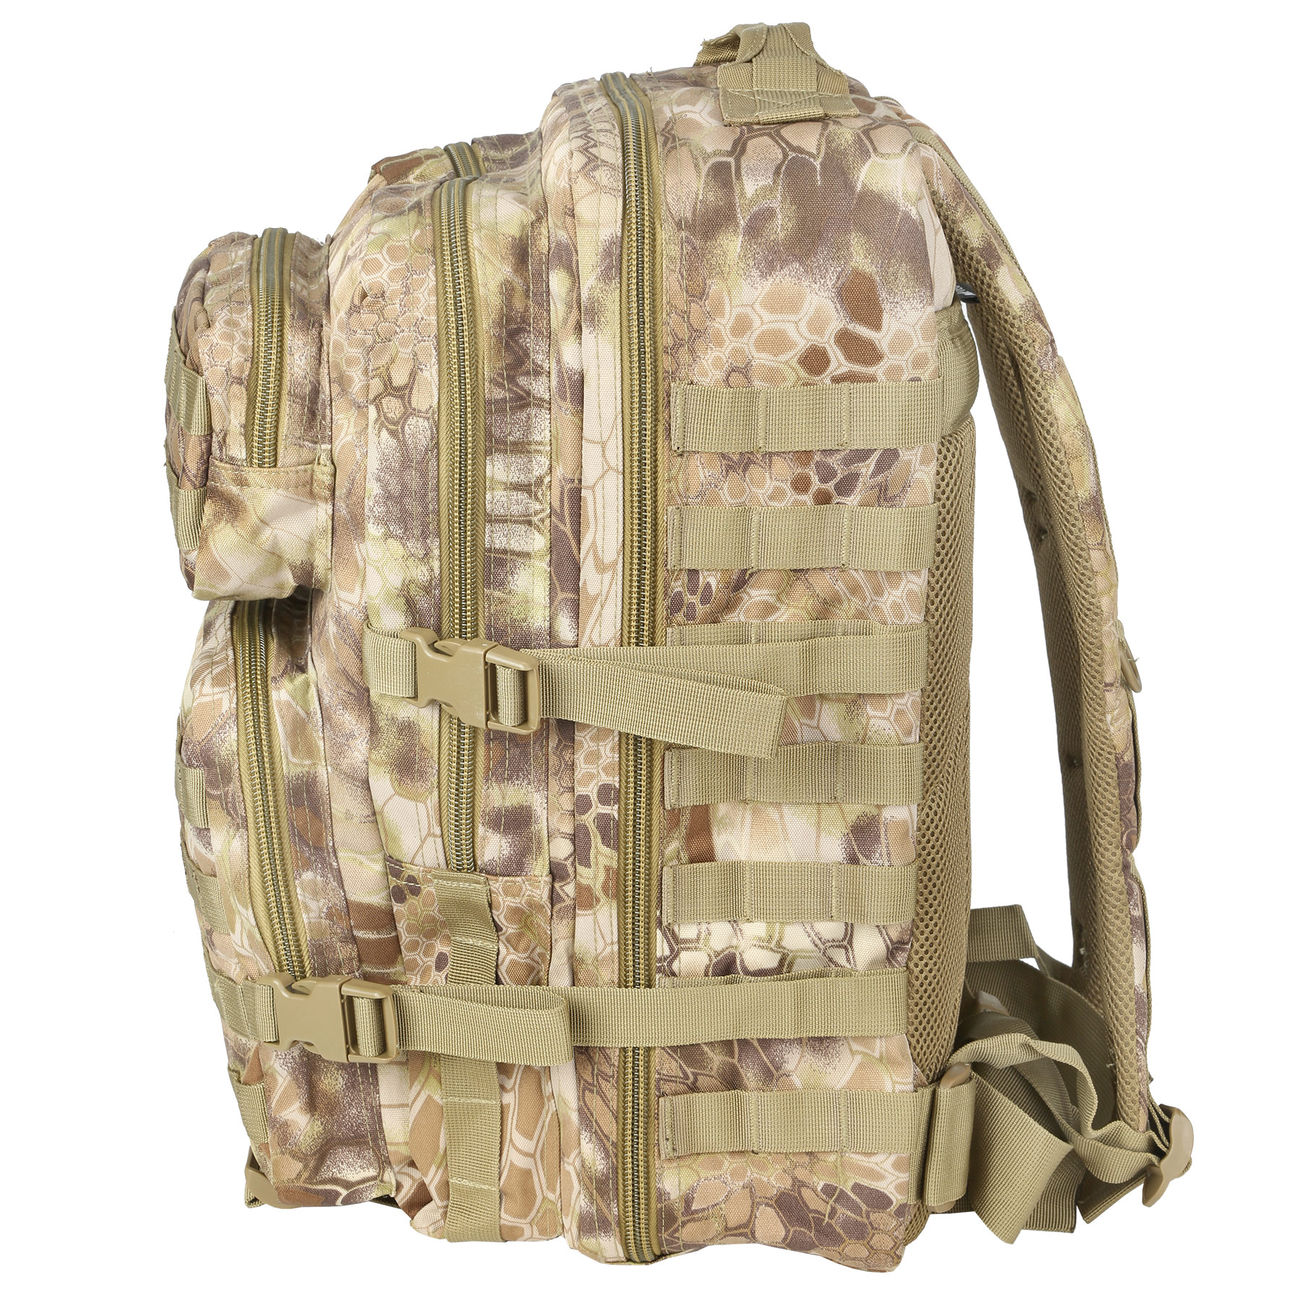 Mil-Tec Rucksack US Assault Pack II 40 Liter mandra tan 2